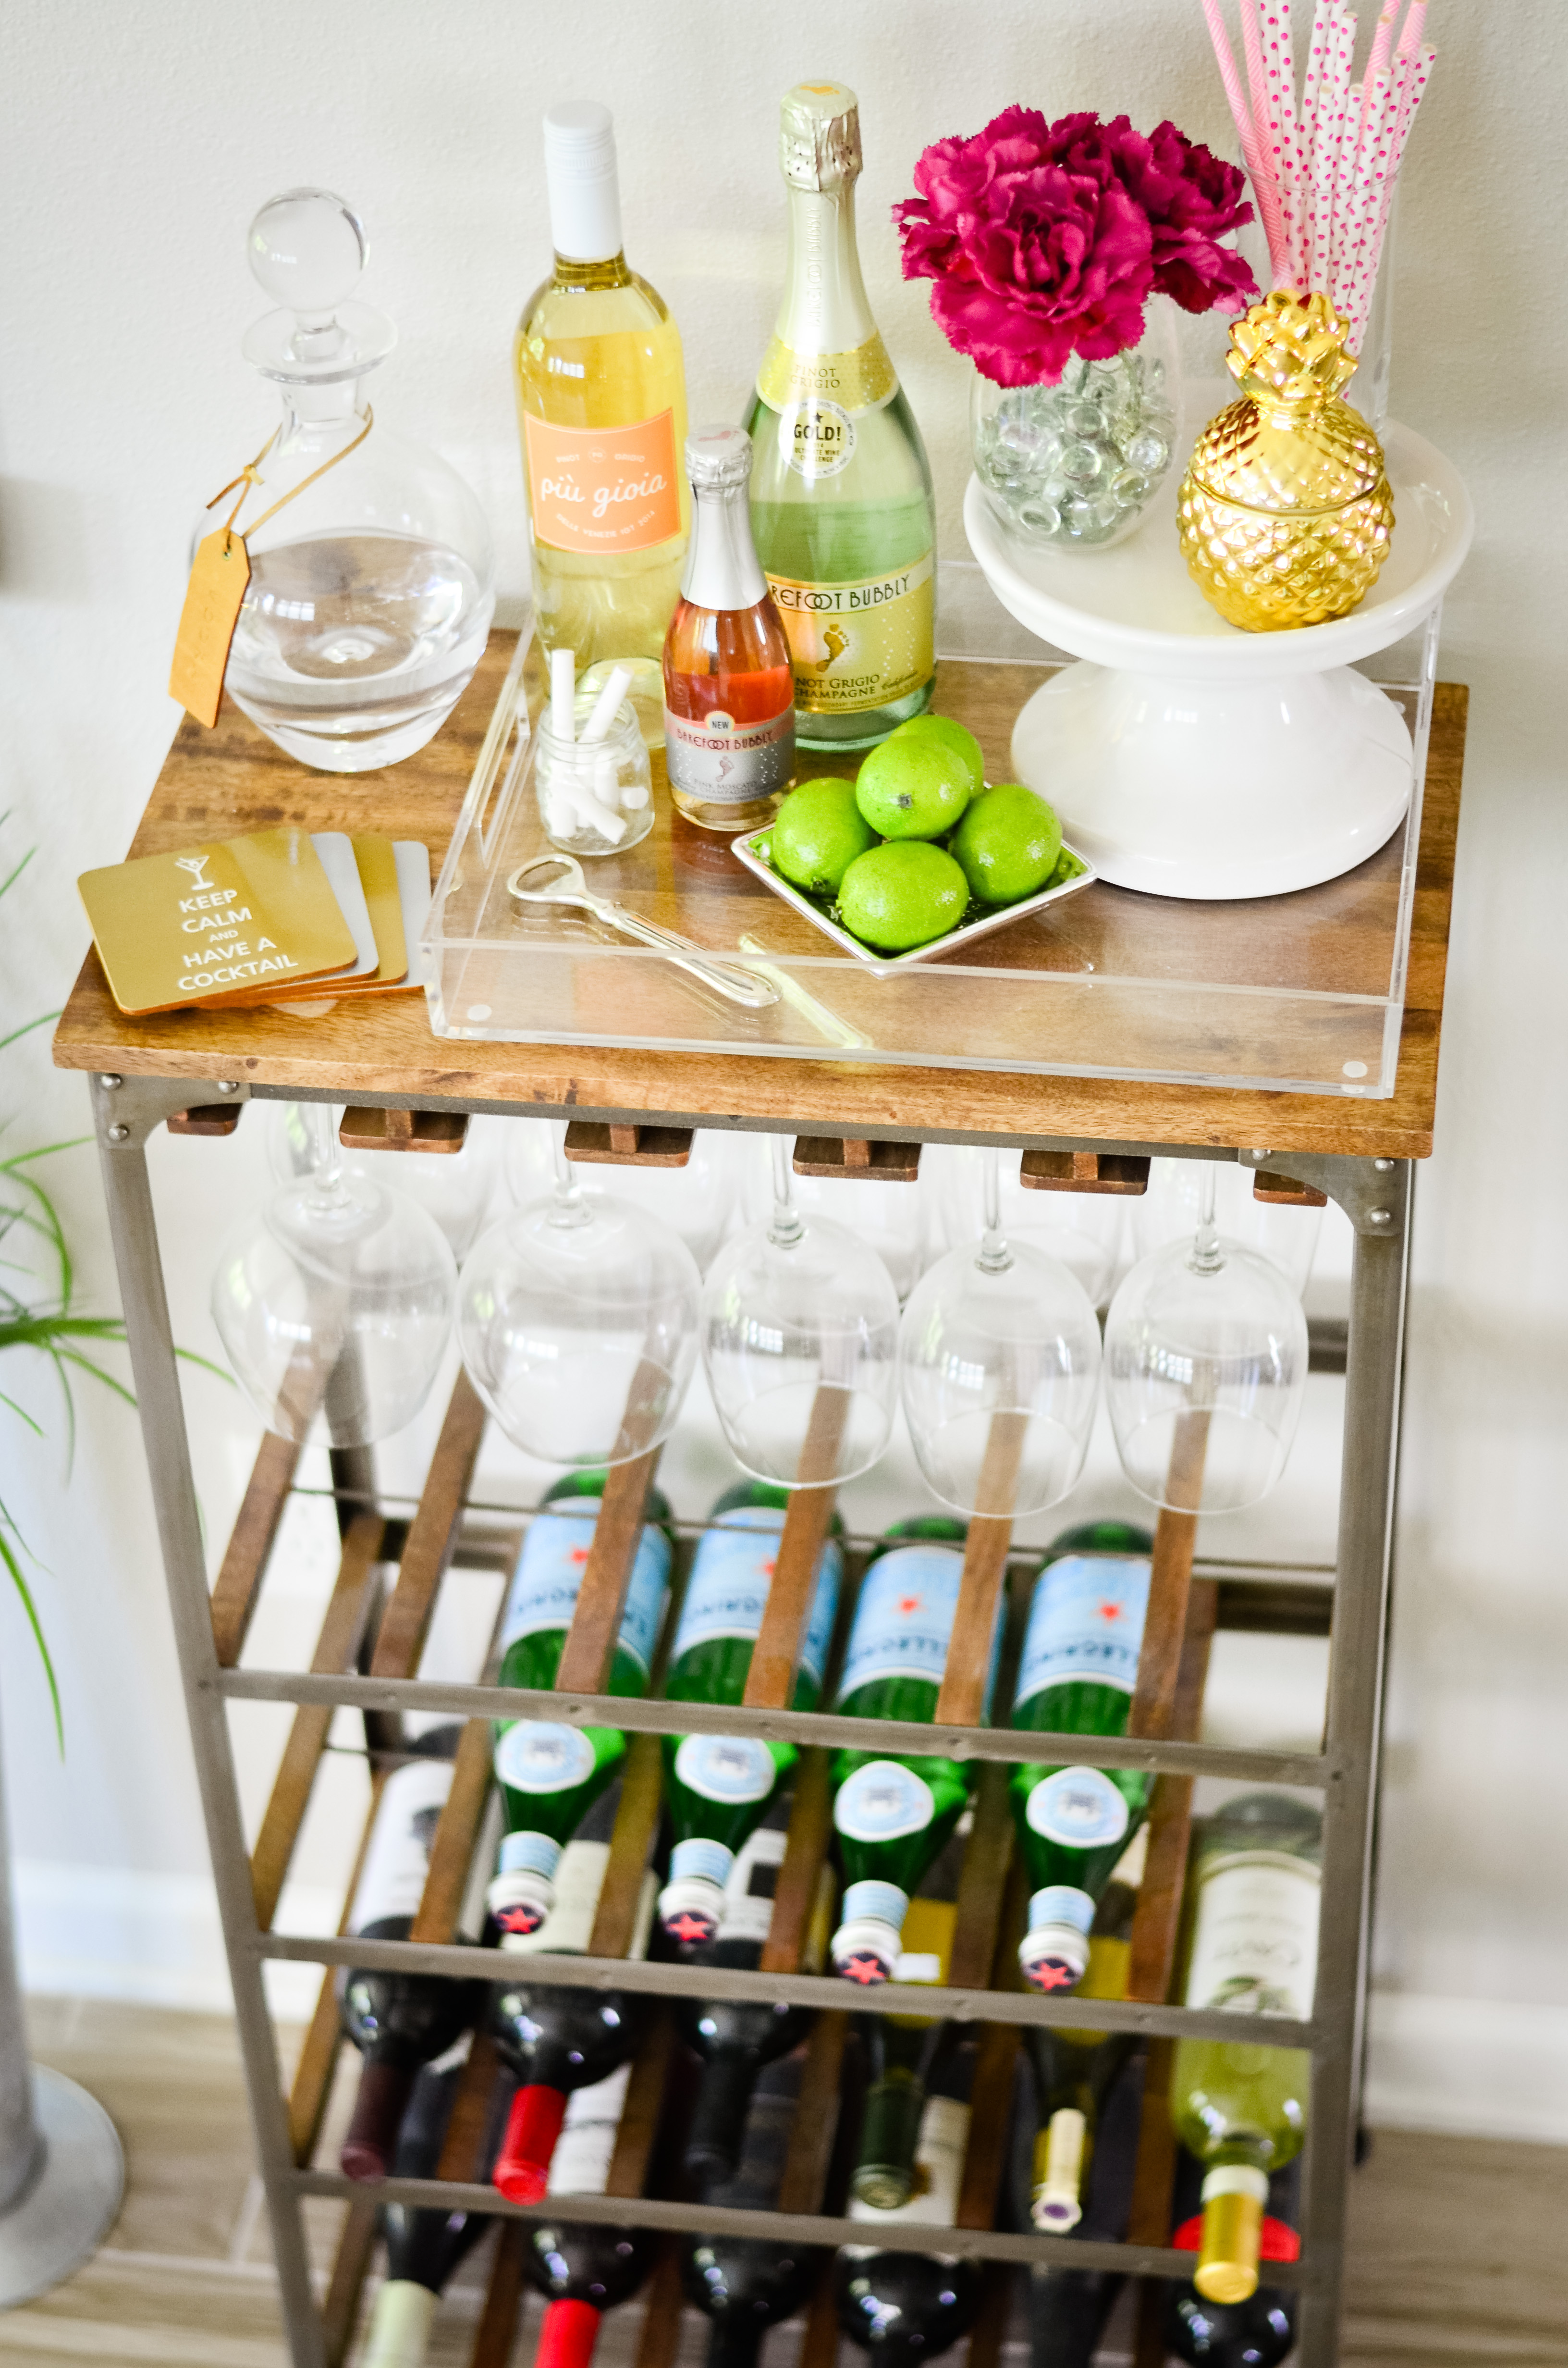 Bar Cart Styling My Favorite Summer Cocktail Under 100 Cals Hello Alley